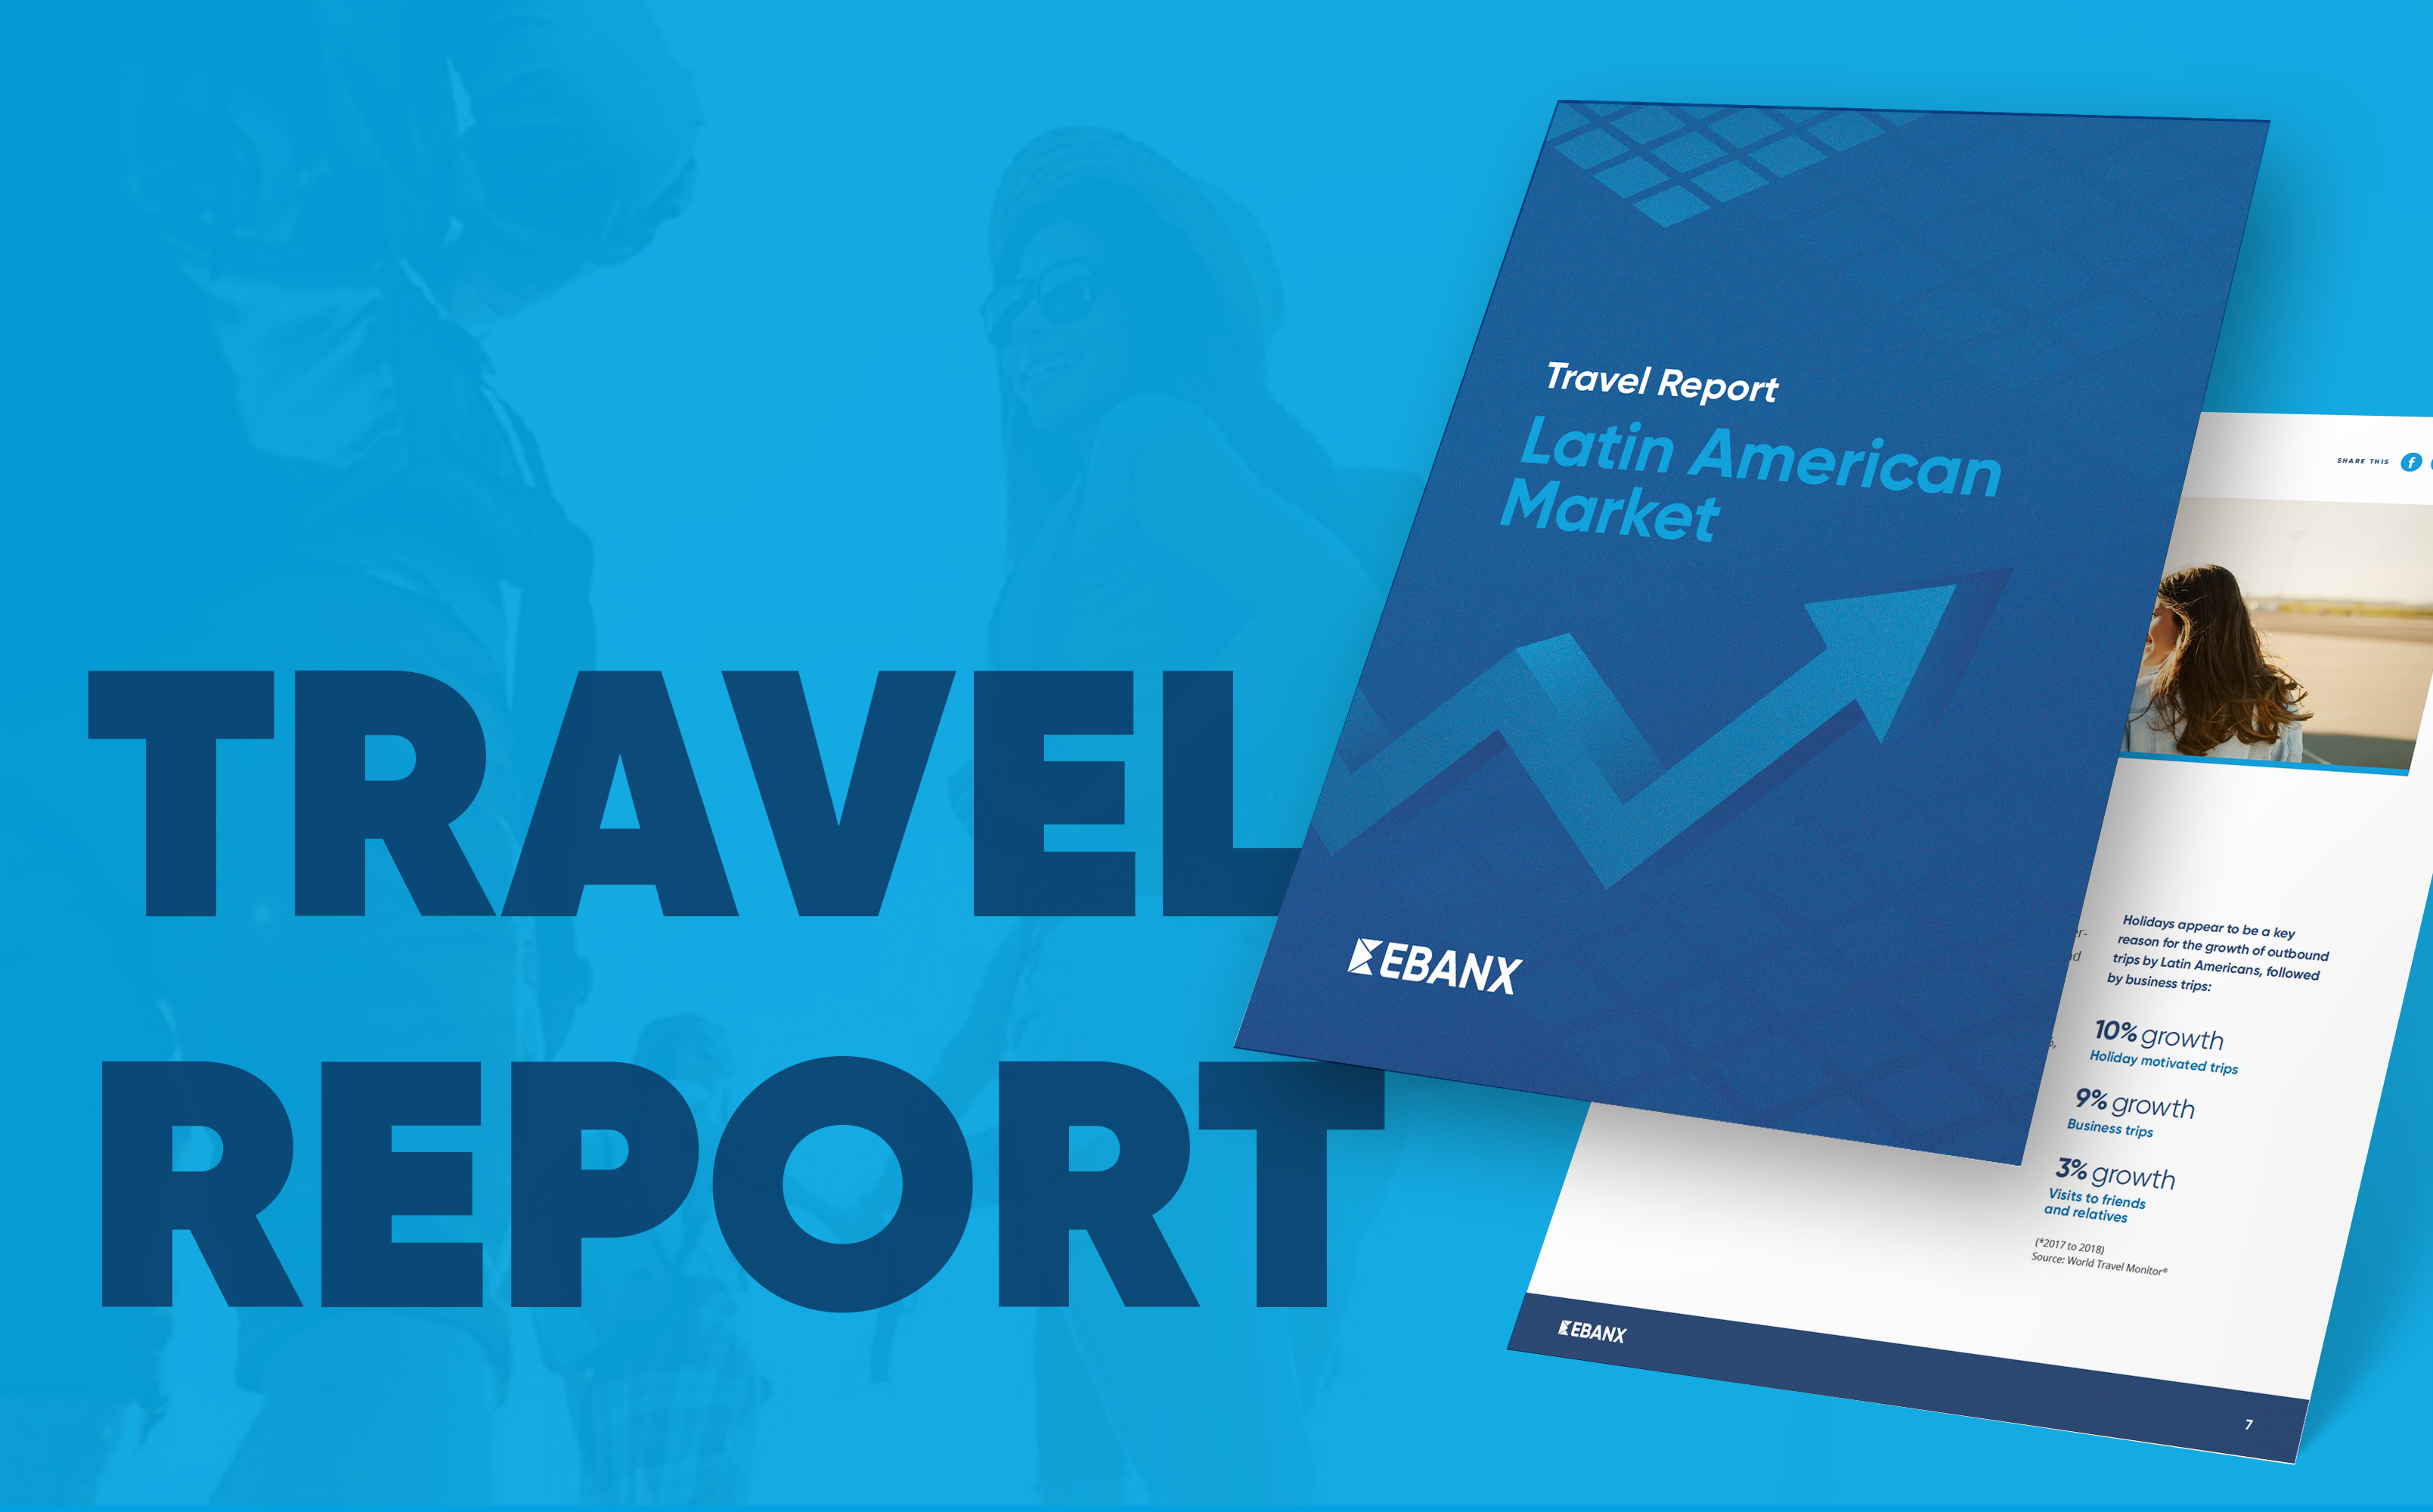 TravelReport